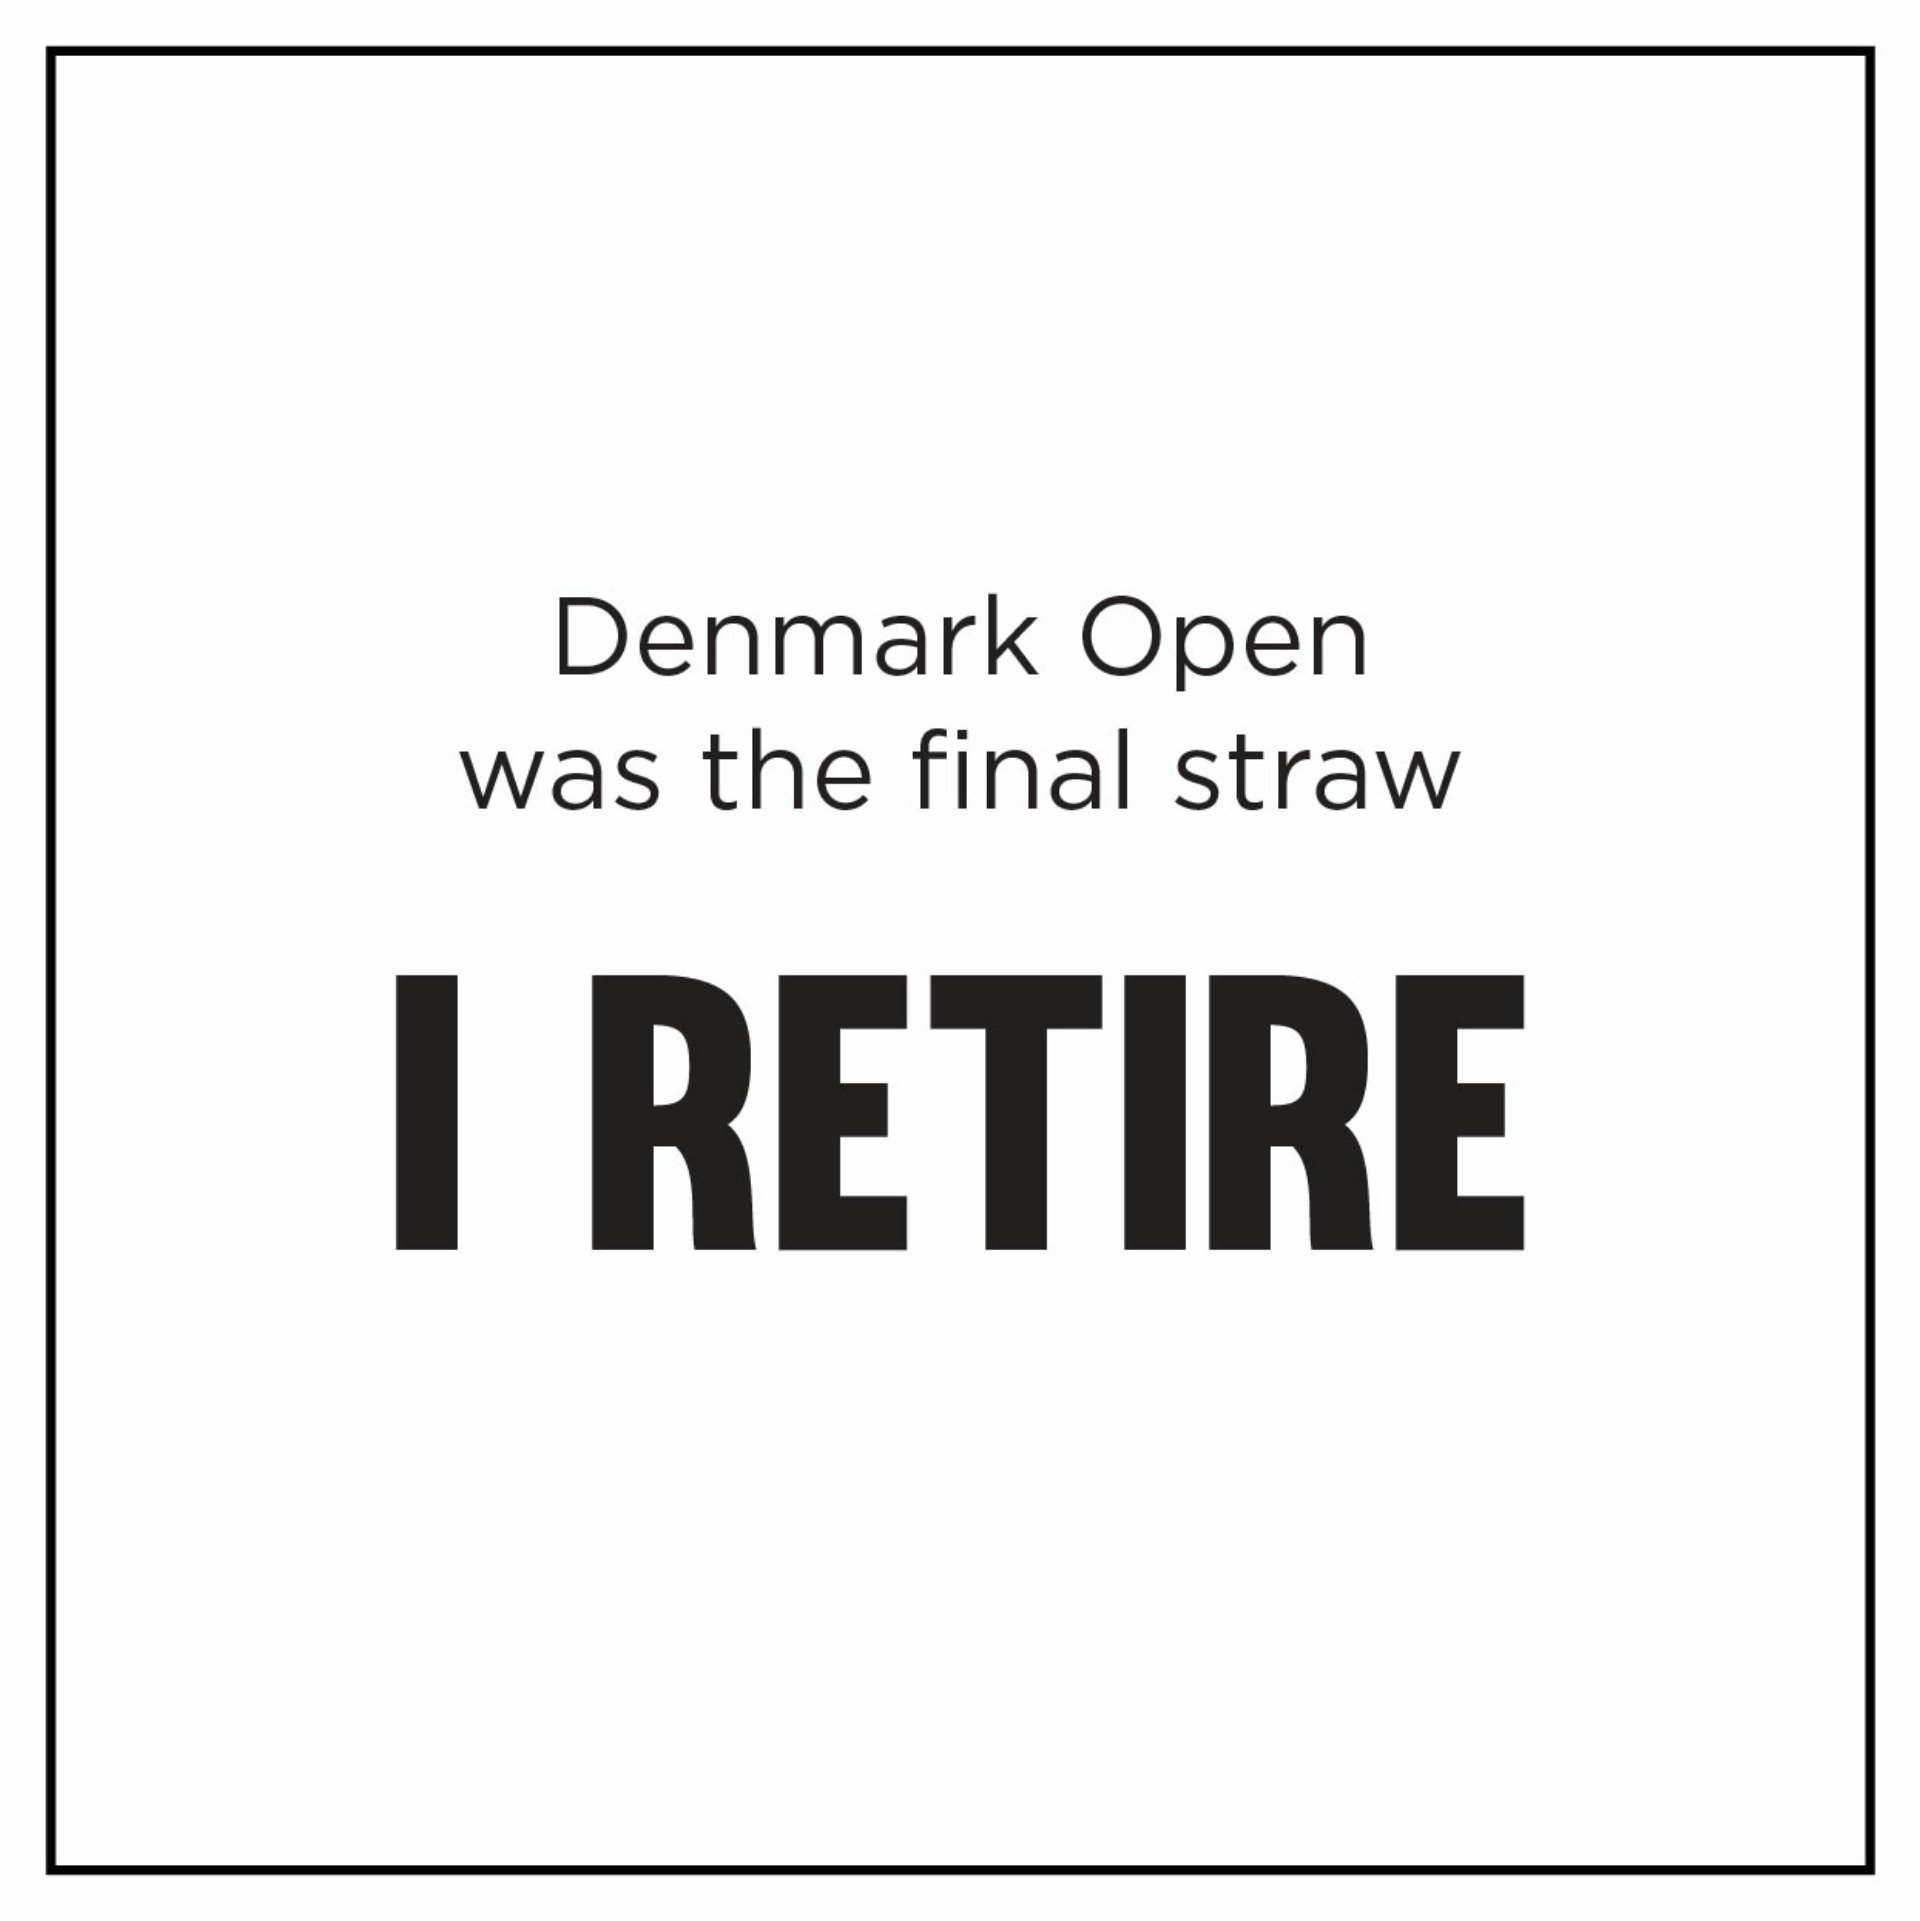 PV Sindhu Retirement? Badminton player PV Sindhu shocked her fans as she wrote 'I retire'. Sindhu wrote Denmark Open was the final straw.